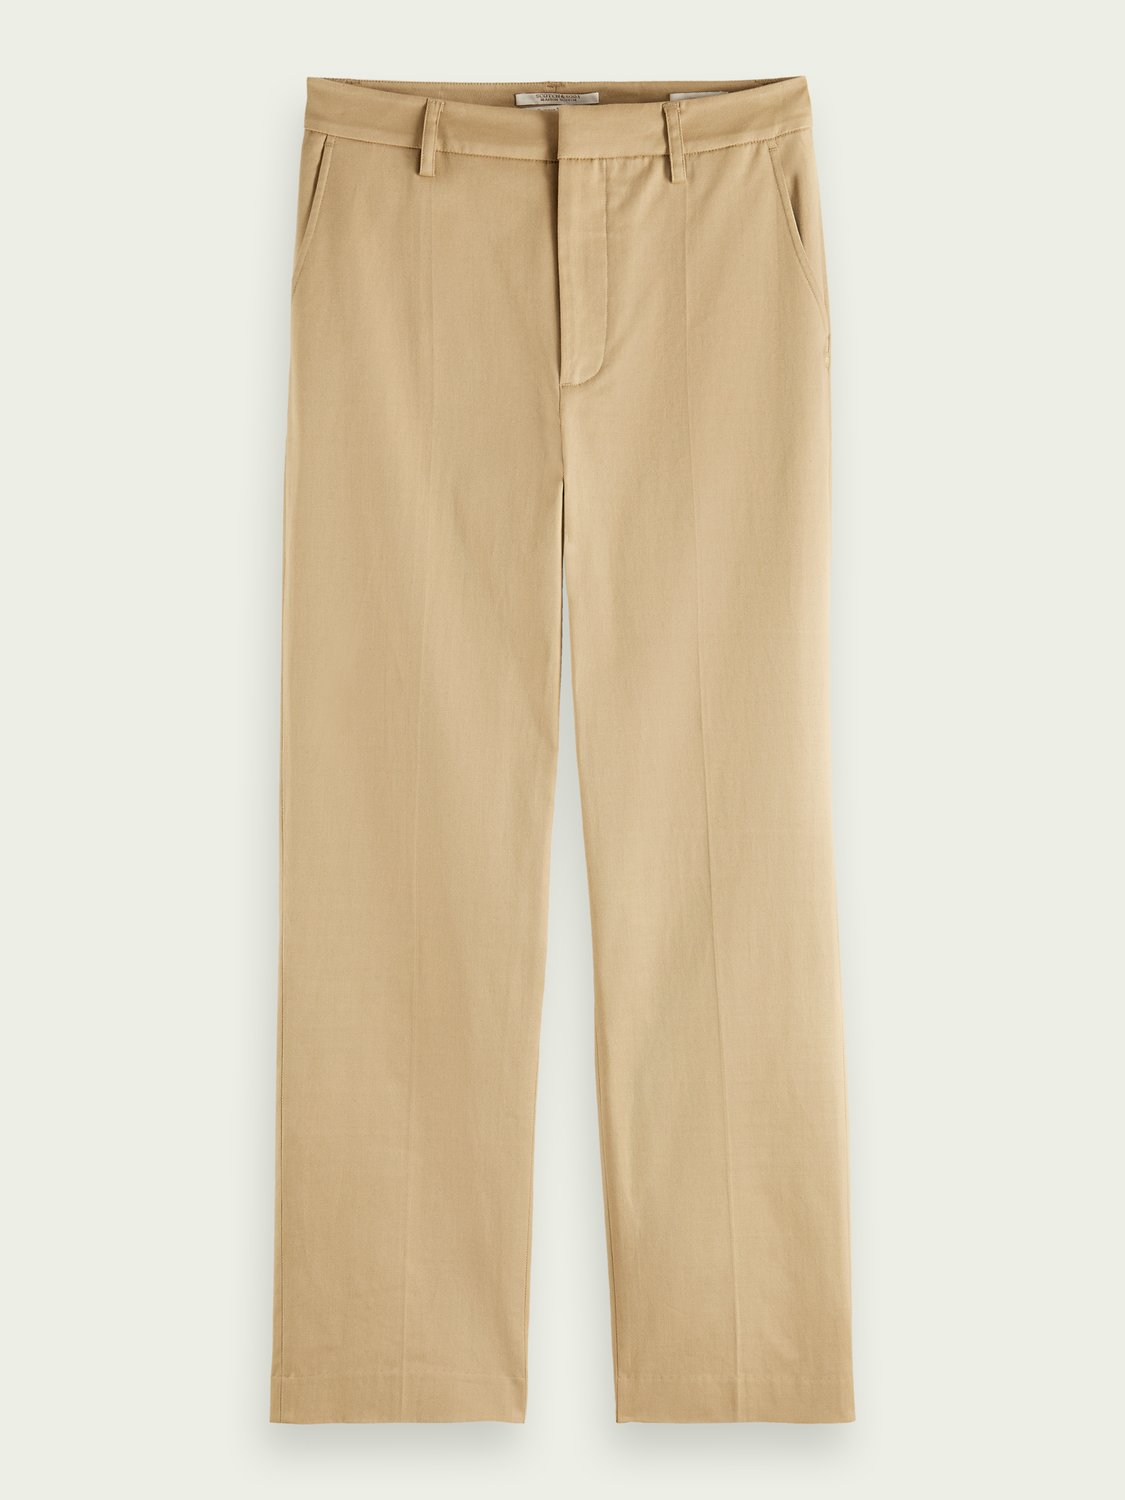 Damen Abott – Stretch twill | Regular fit stretch chino